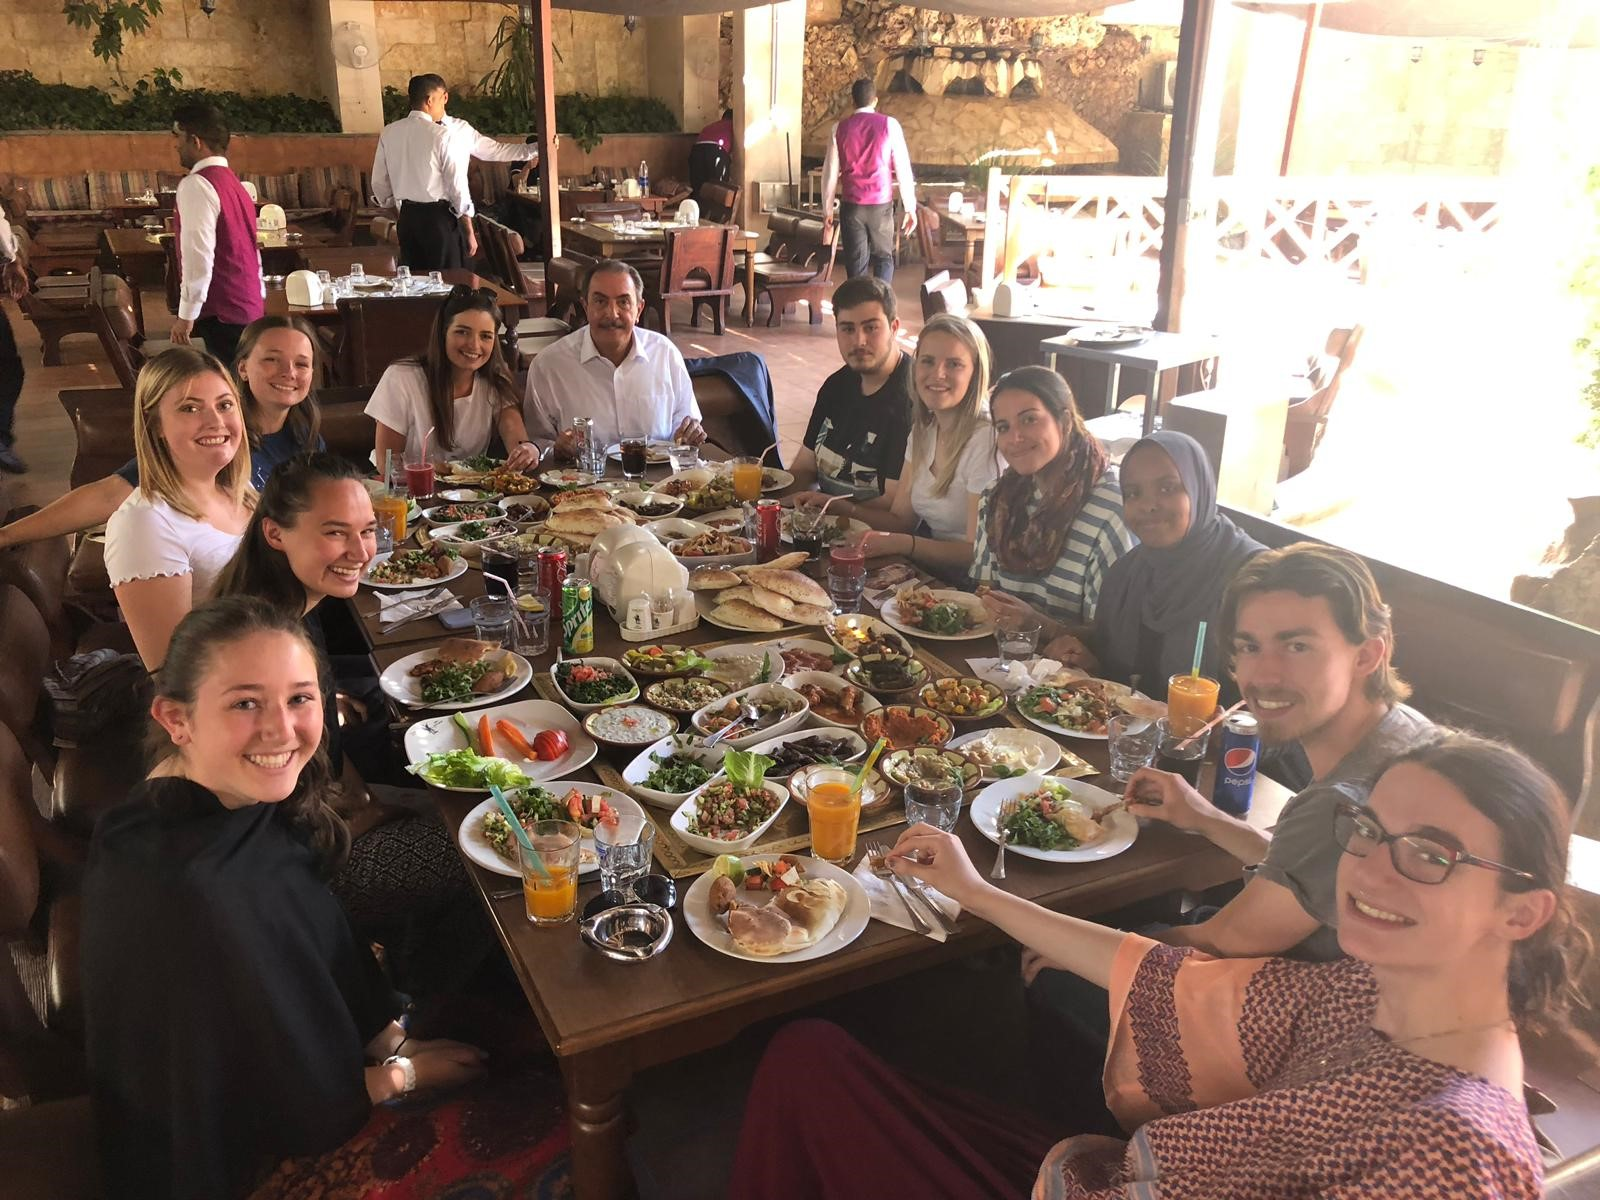 After our Conflict & the Struggle for Peace program portion of classes in Amman, our professor Dr. Omar Rifai took us all out for a traditional Jordanian meal. Photo credit: Russo, 2019